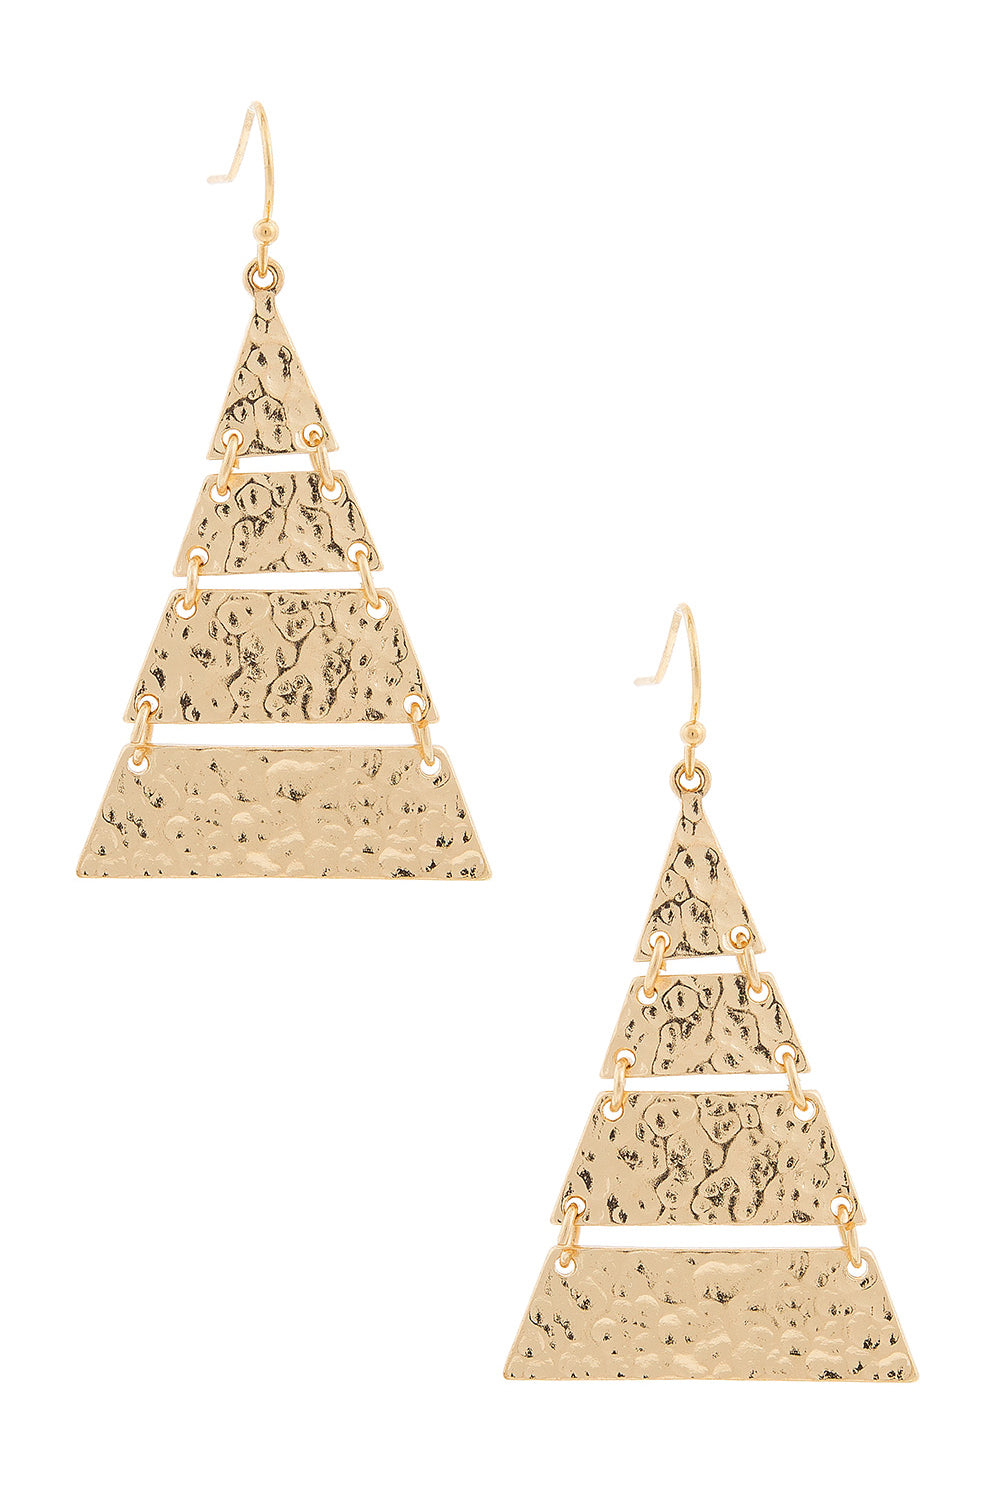 Type 3 Ancient Egypt Earrings